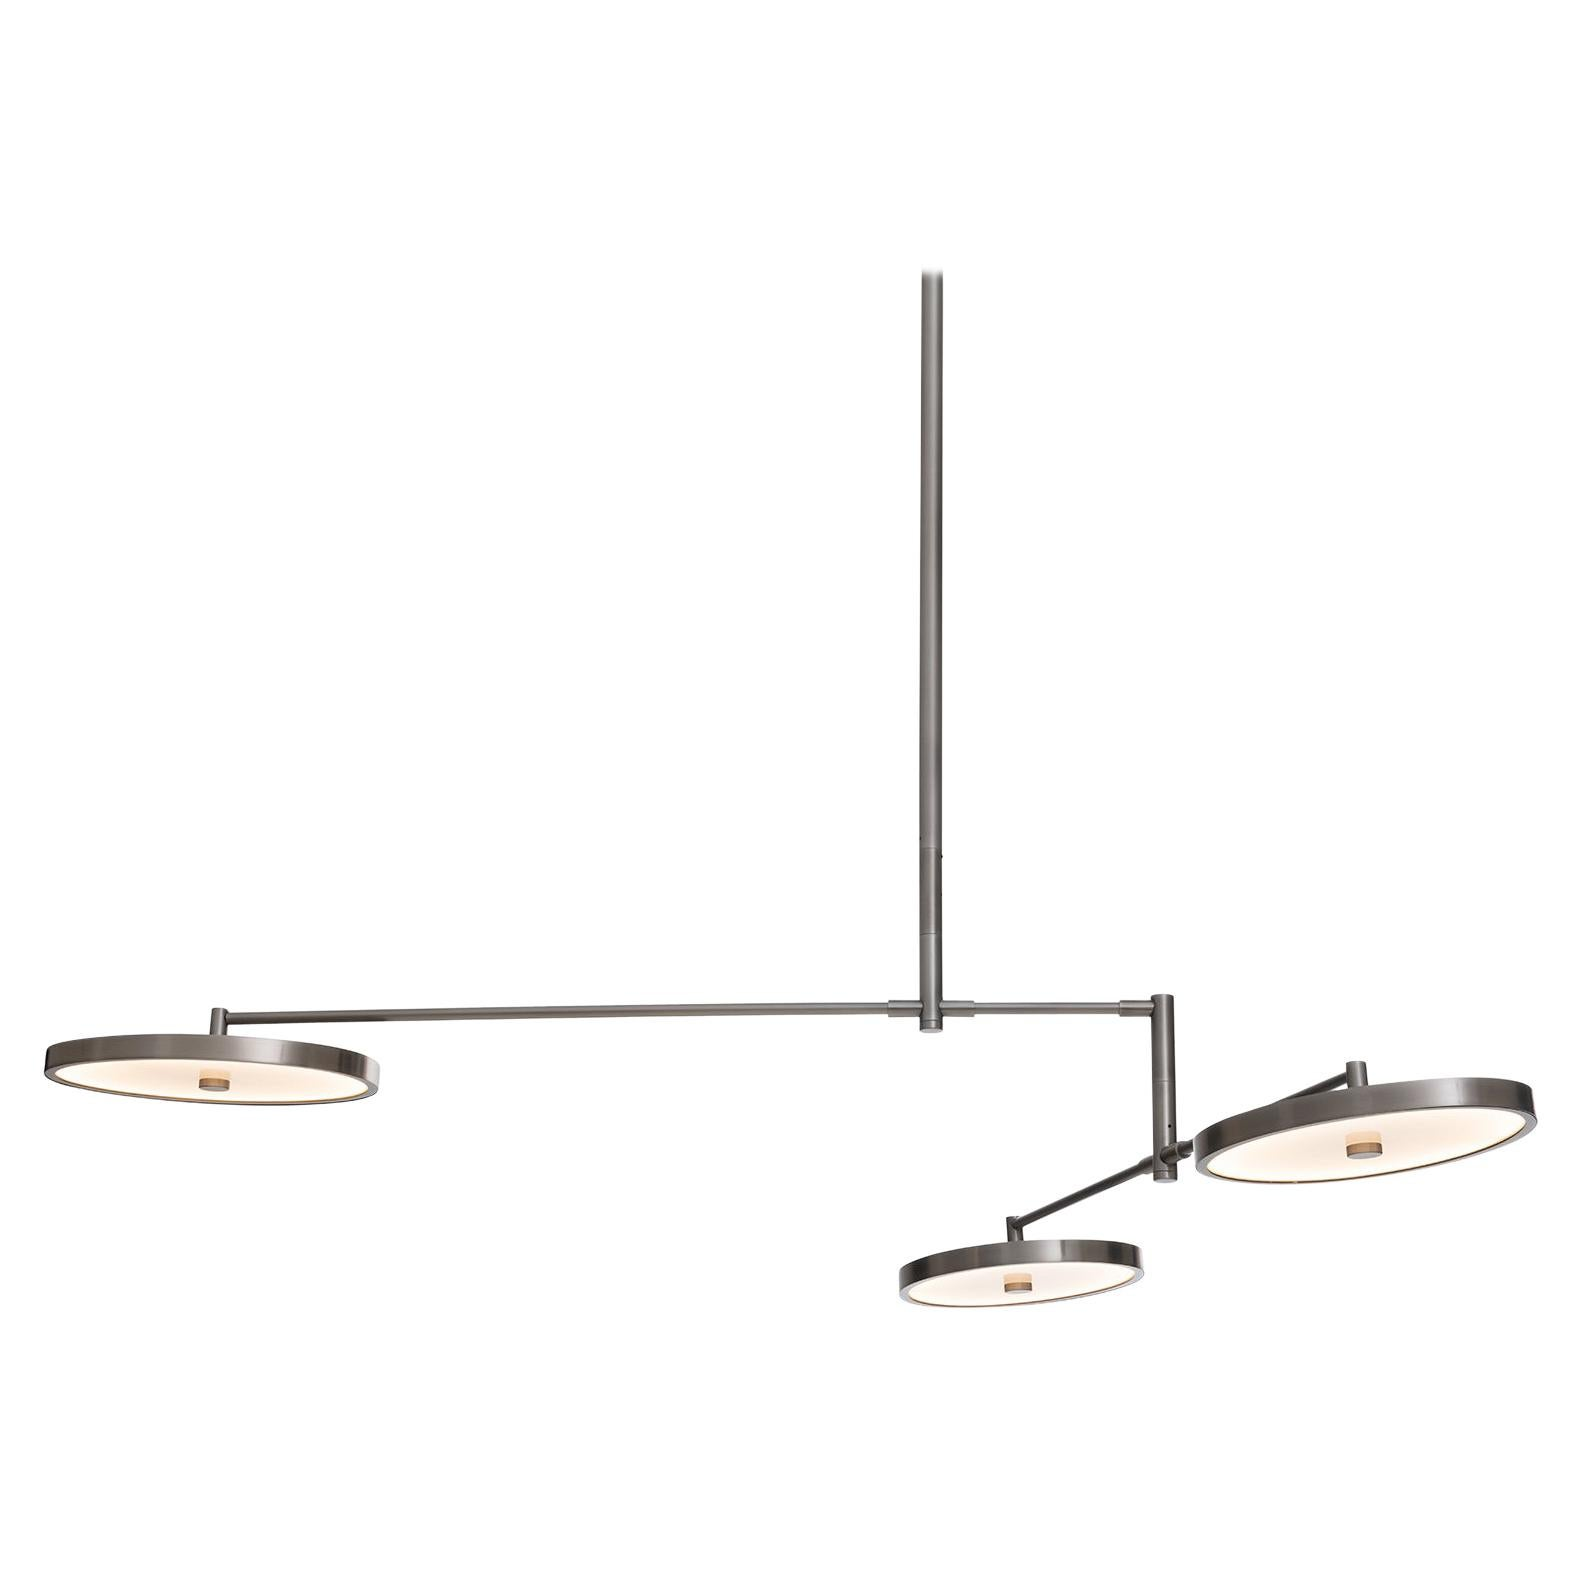 HOLLY HUNT Helios Medium Chandelier with 3 Movable Light Heads by Stefan Gulassa